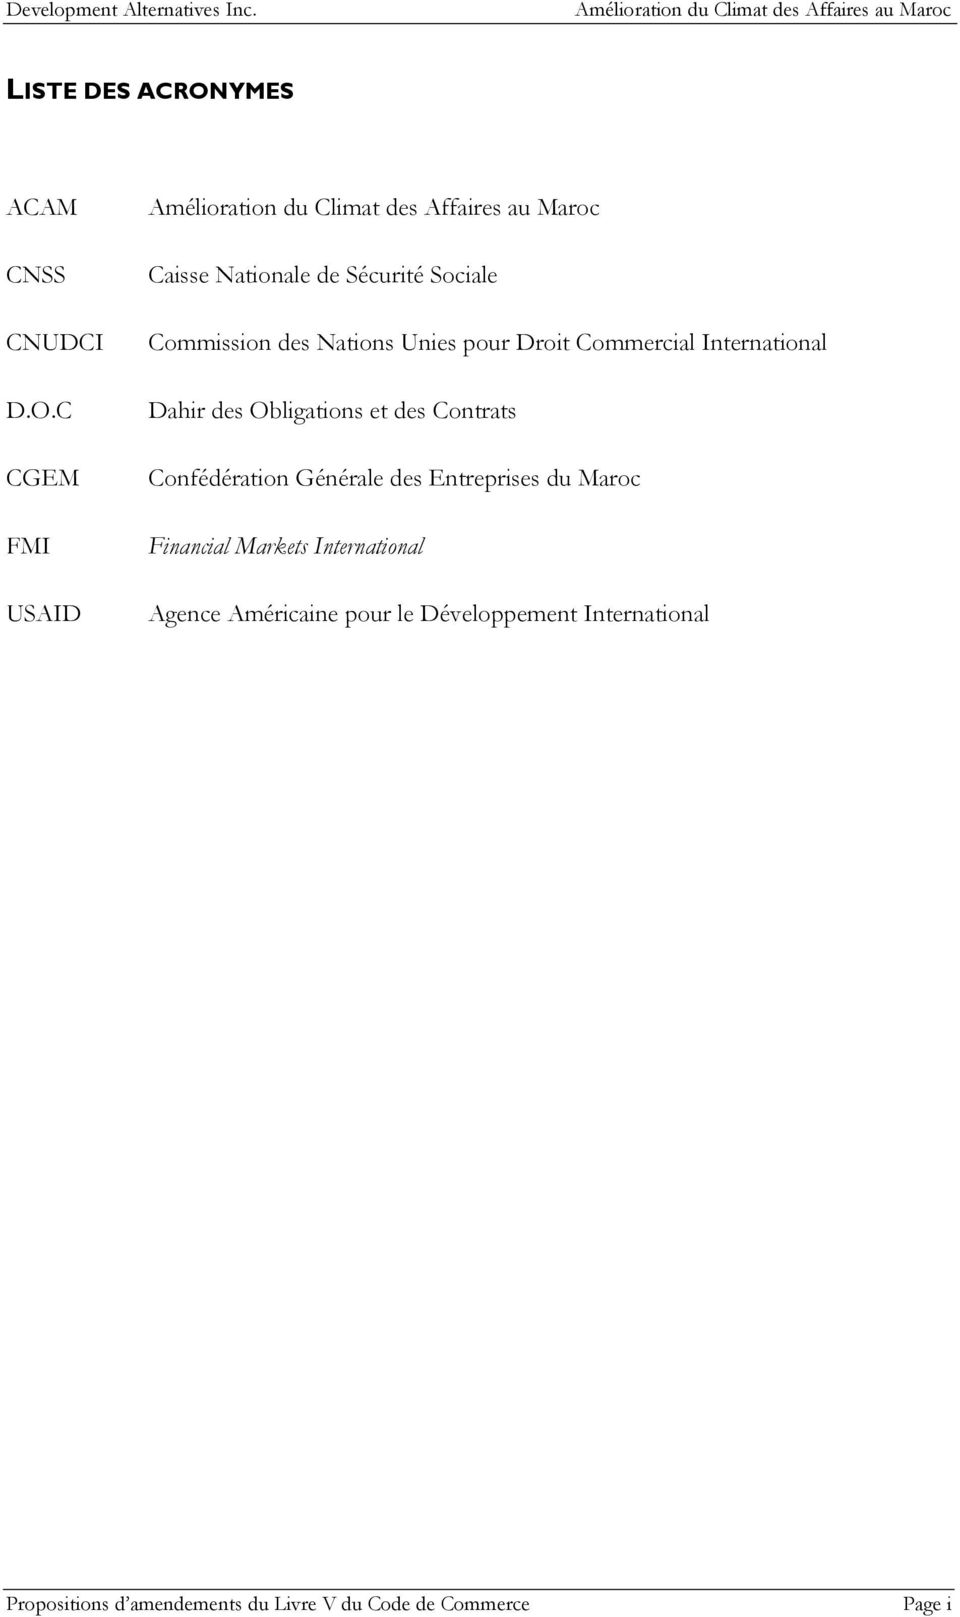 C CGEM FMI USAID Caisse Nationale de Sécurité Sociale Commission des Nations Unies pour Droit